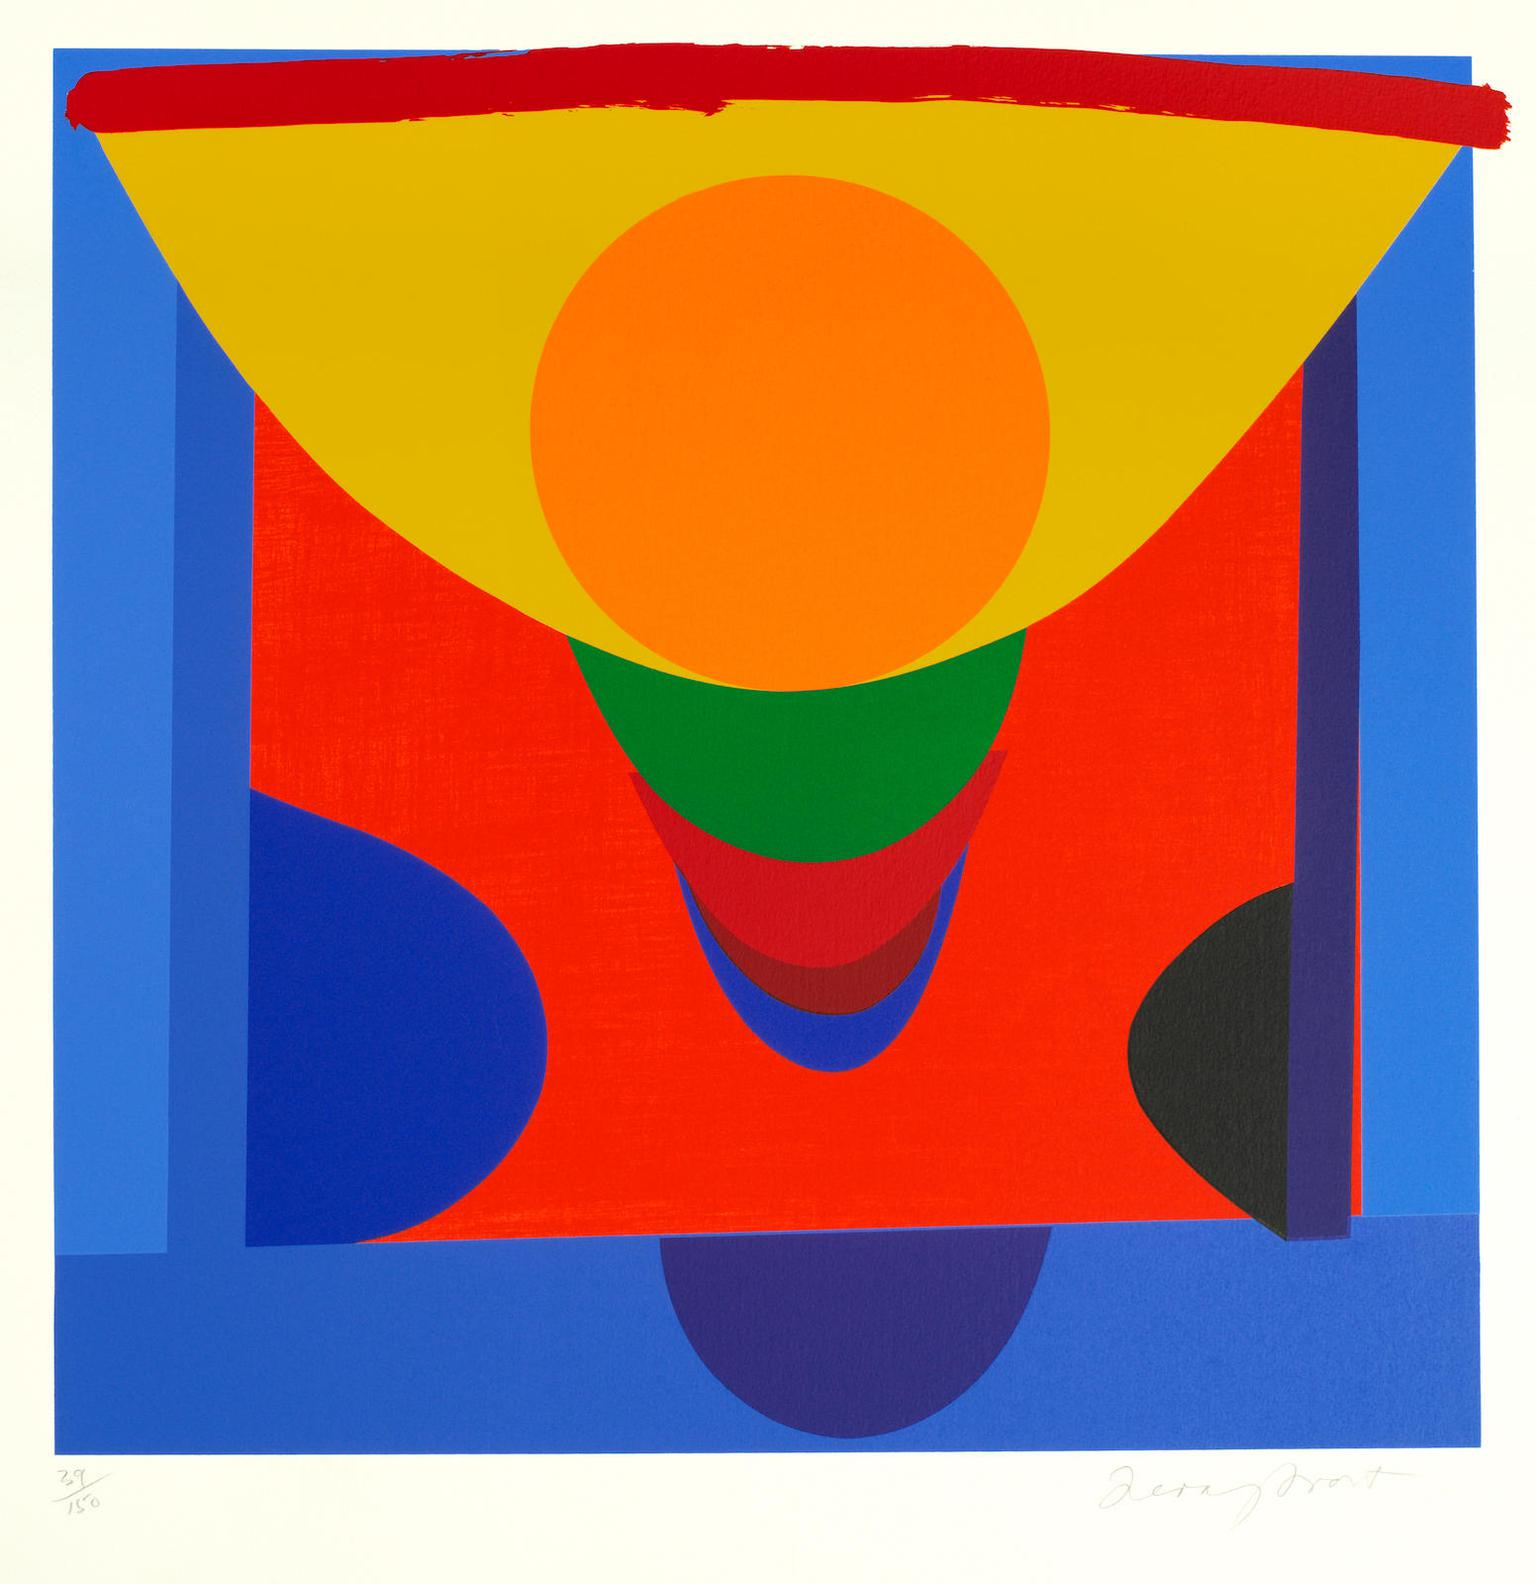 Terry Frost-Malaga Blue And Orange-1998